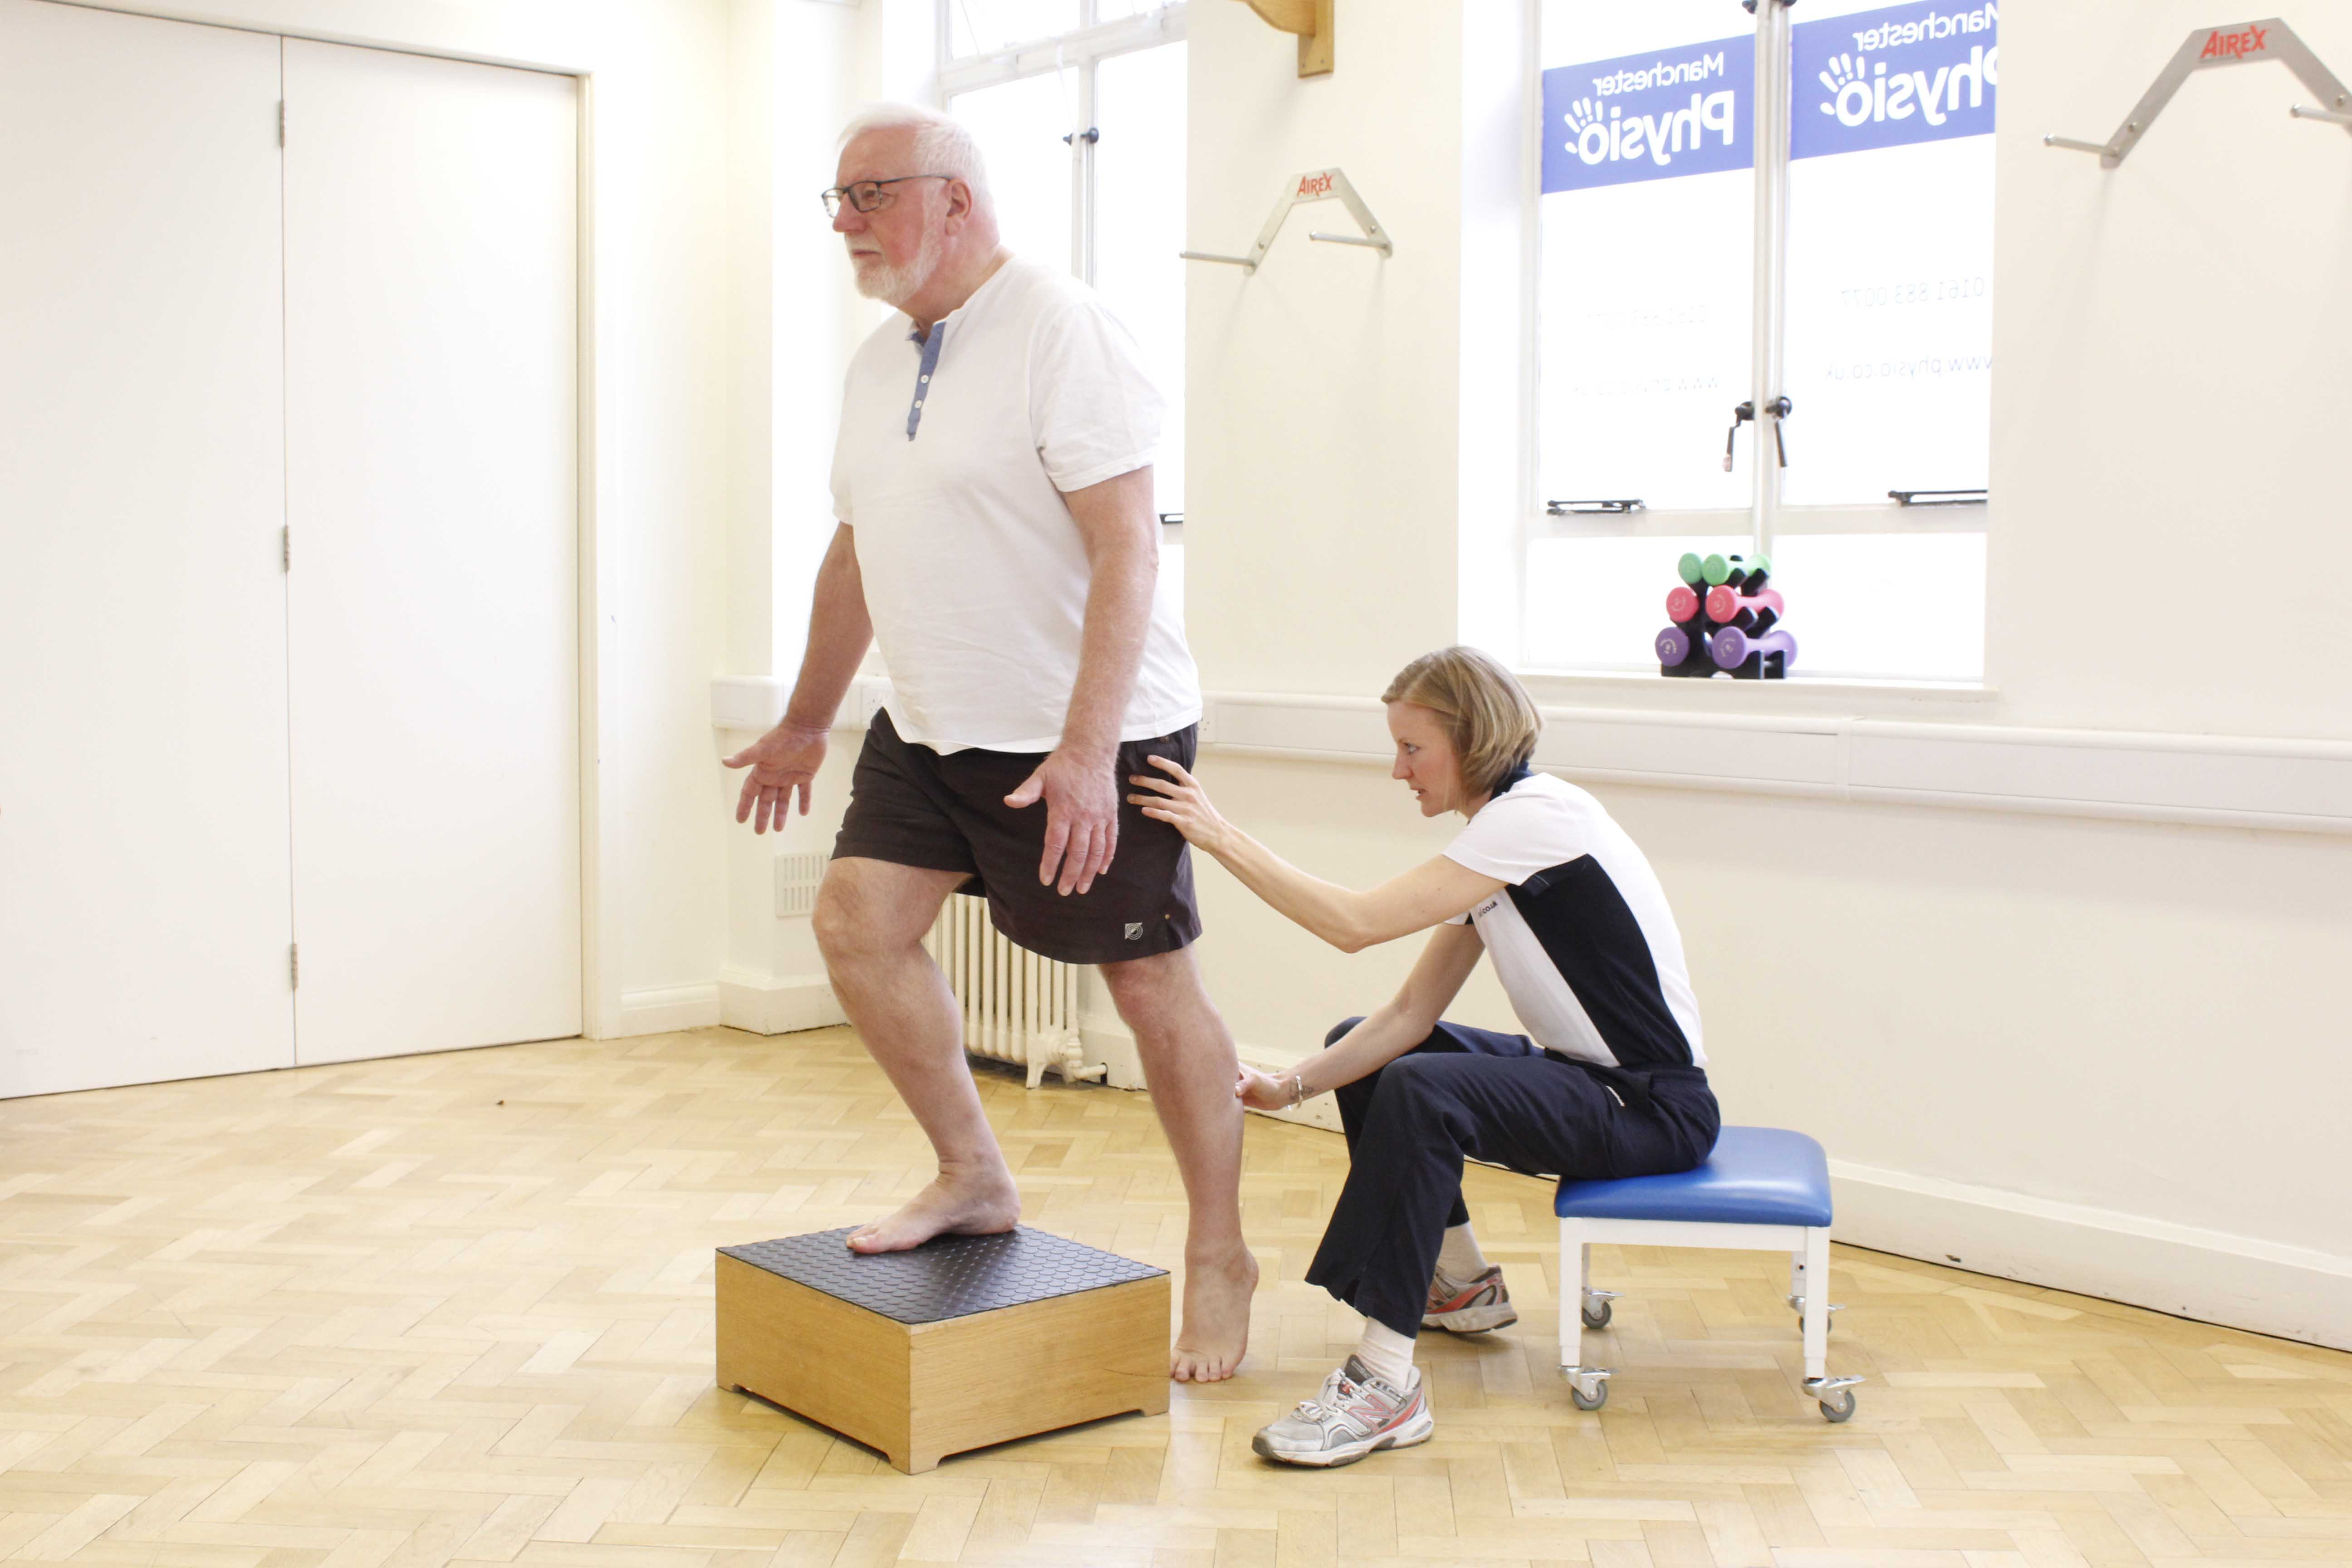 Step ups to develop functional strength and fine motor control of the lower limbs under supervision of a neurological physiotherapist